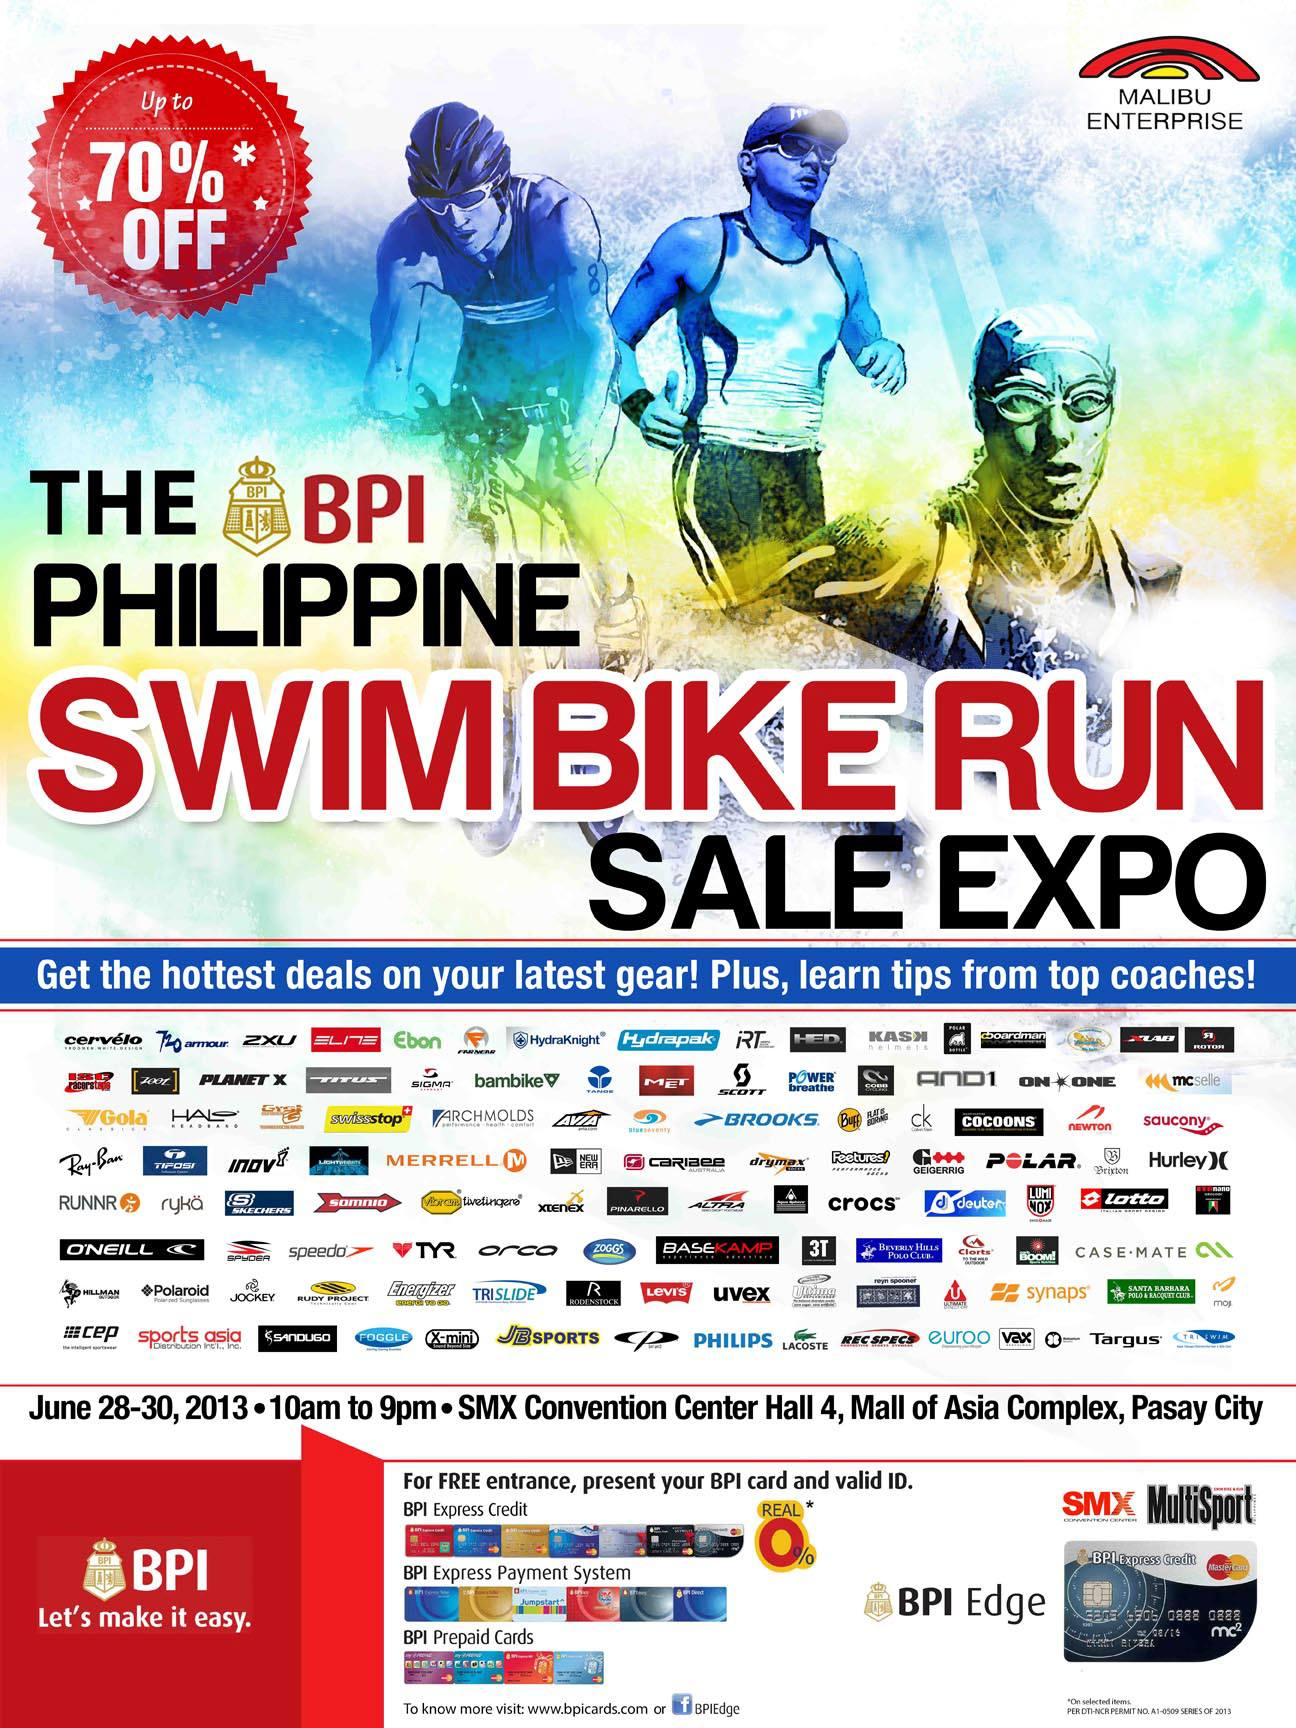 The Philippines Swim Bike Run Sale Expo @ SMX Convention Center June 2013